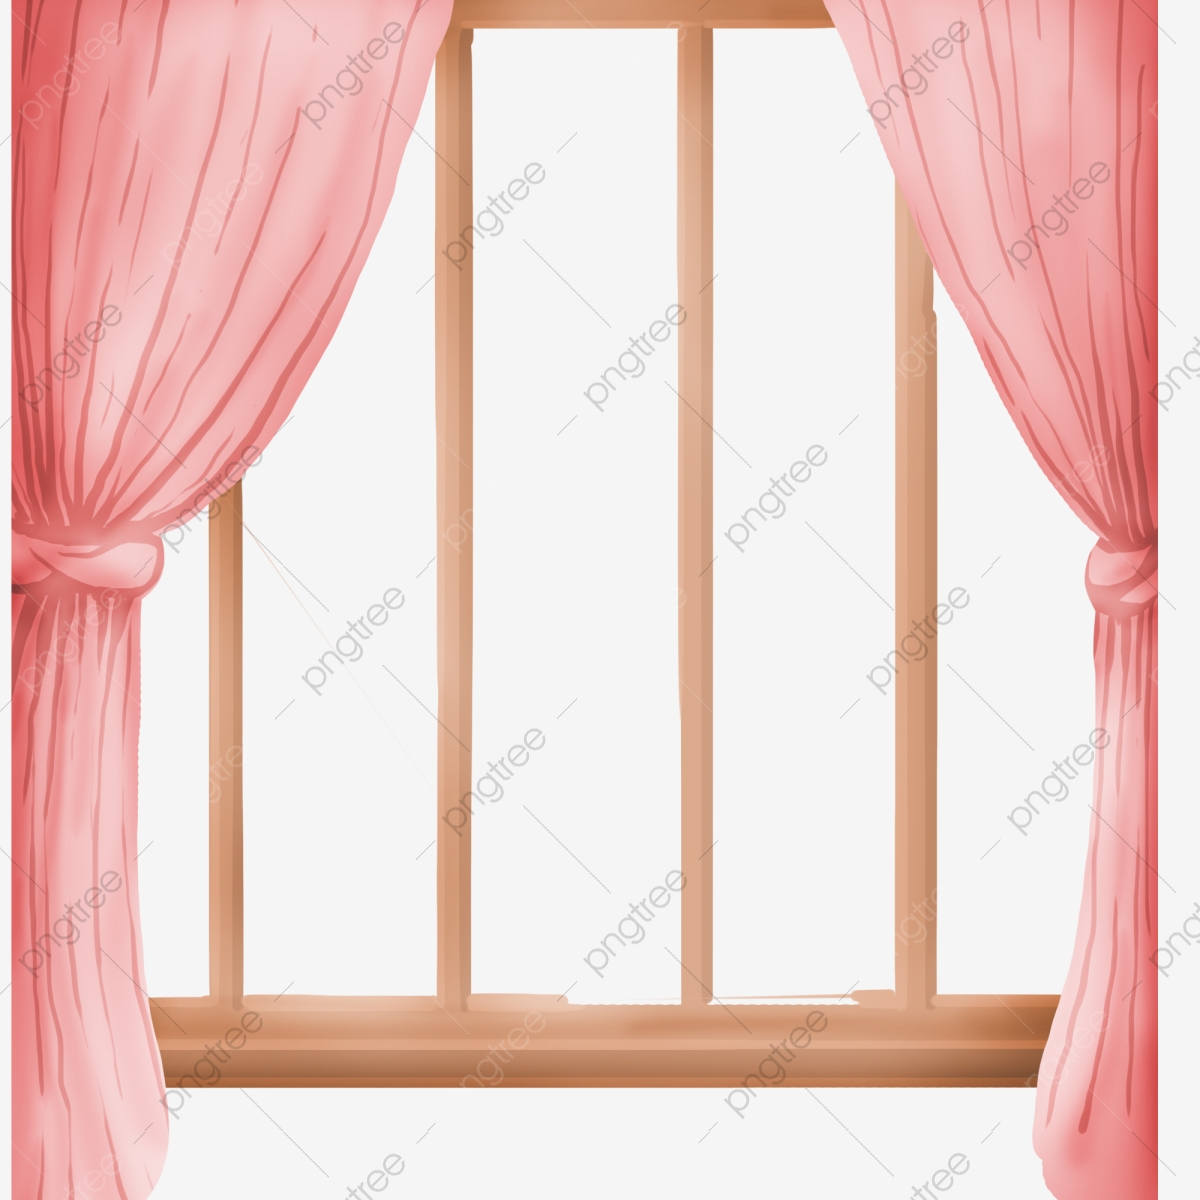 https pngtree com freepng window curtain pink 4431915 html